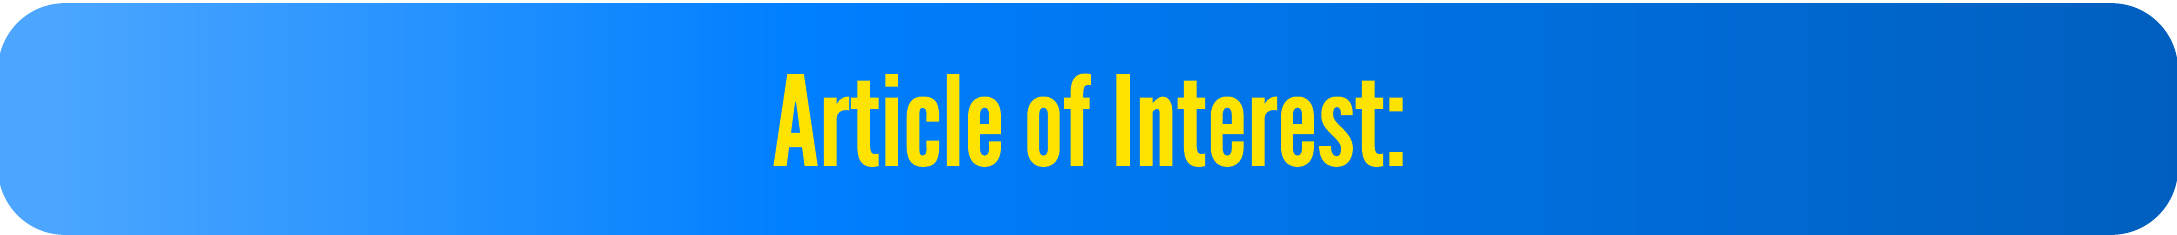 Articles of Interest: